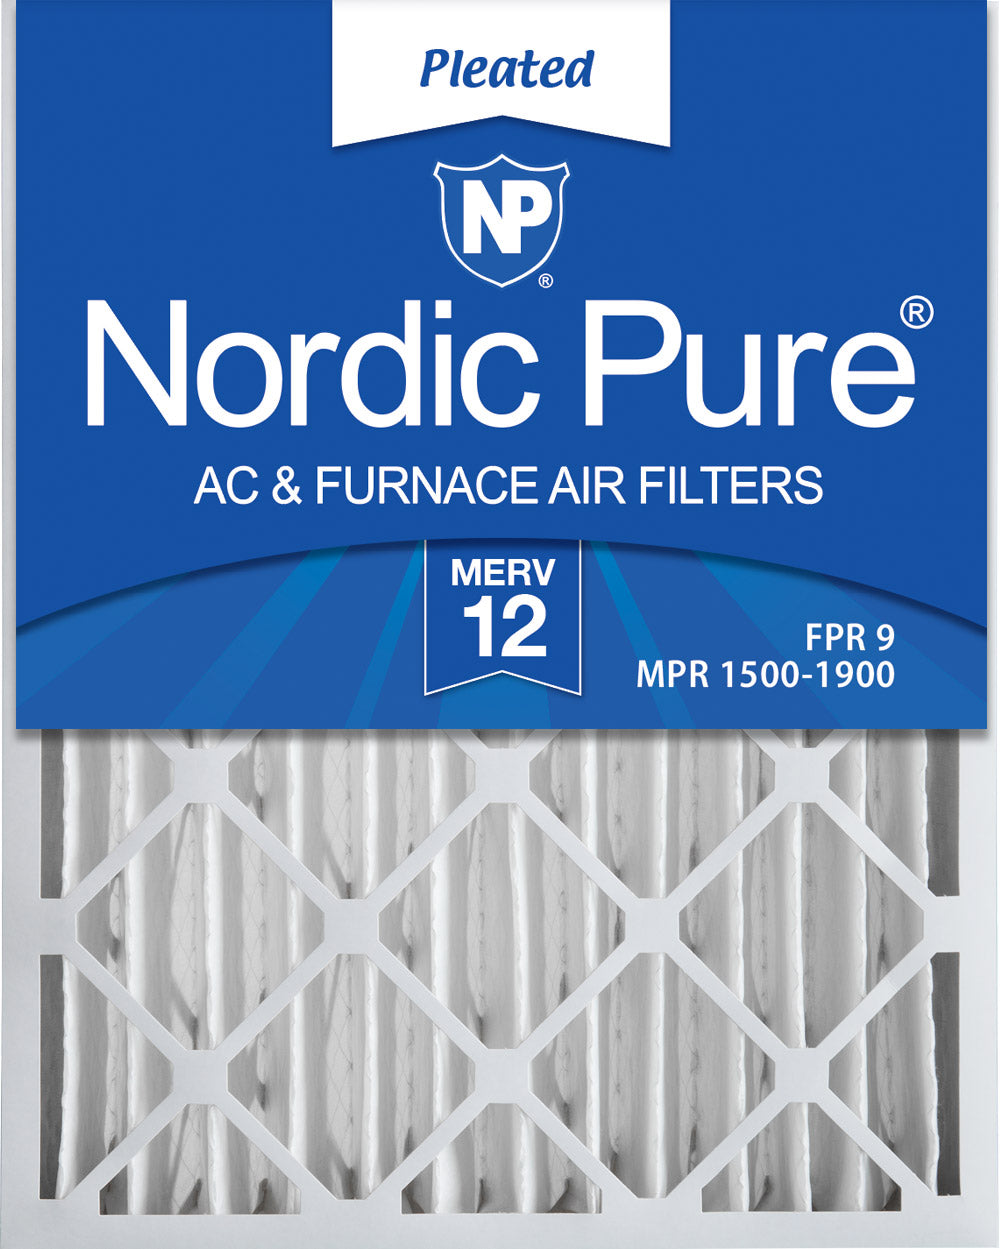 16x25x4 (3 5/8) Pleated MERV 12 Air Filters 6 Pack